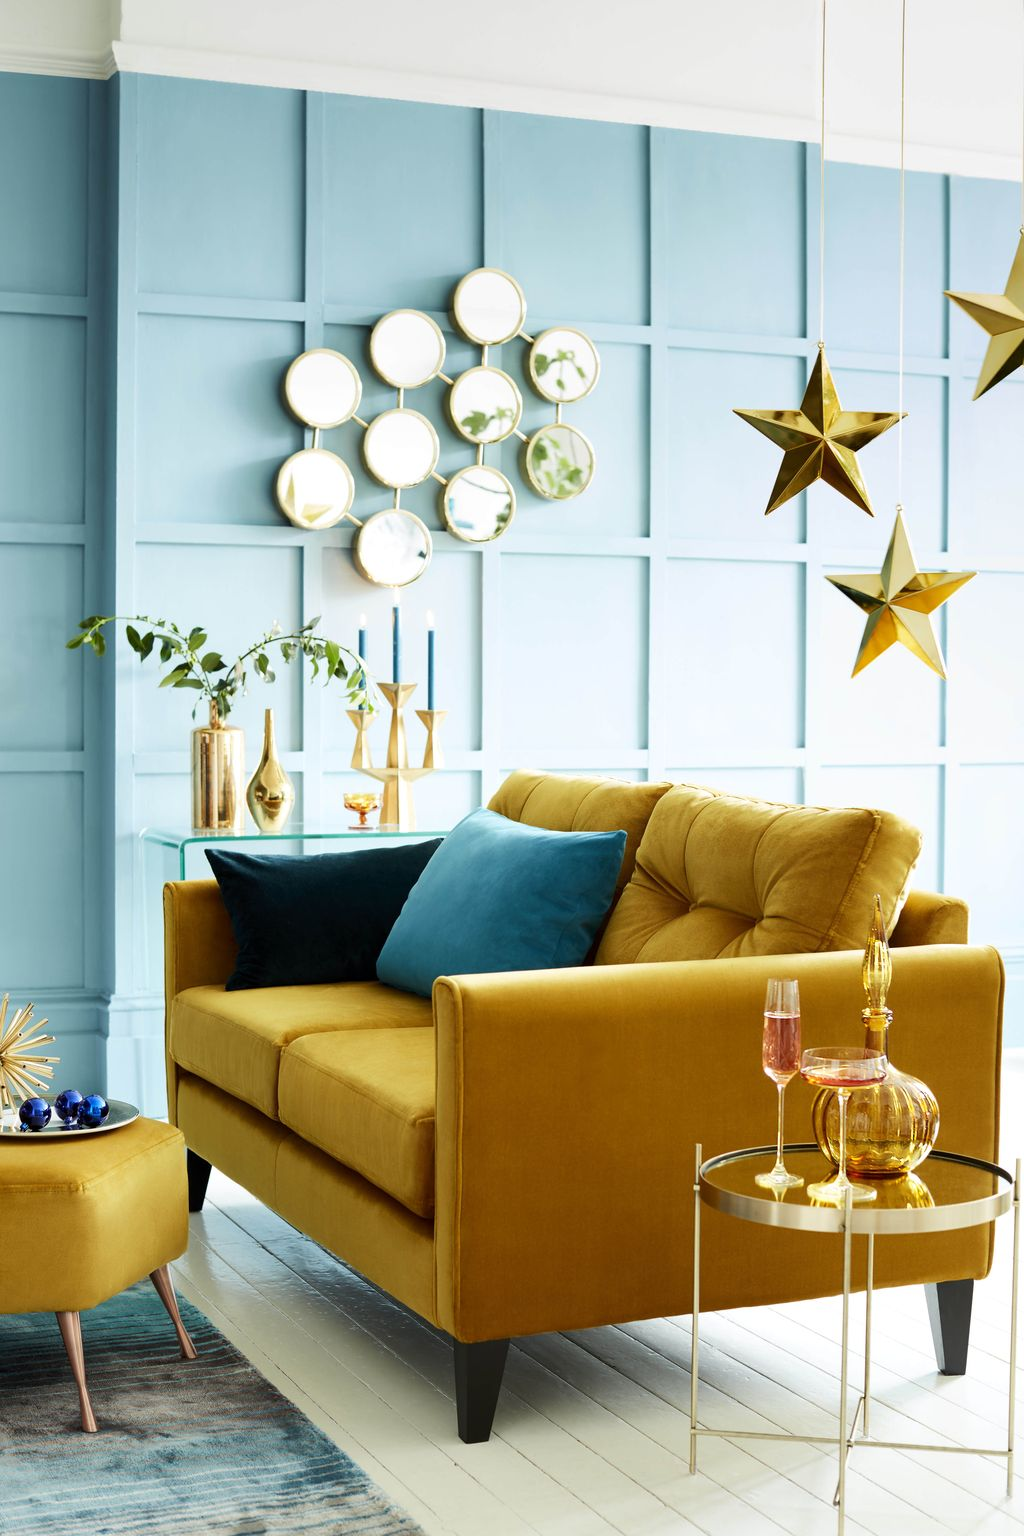 Charming Yellow Interior Design Ideas Best For Summer 16